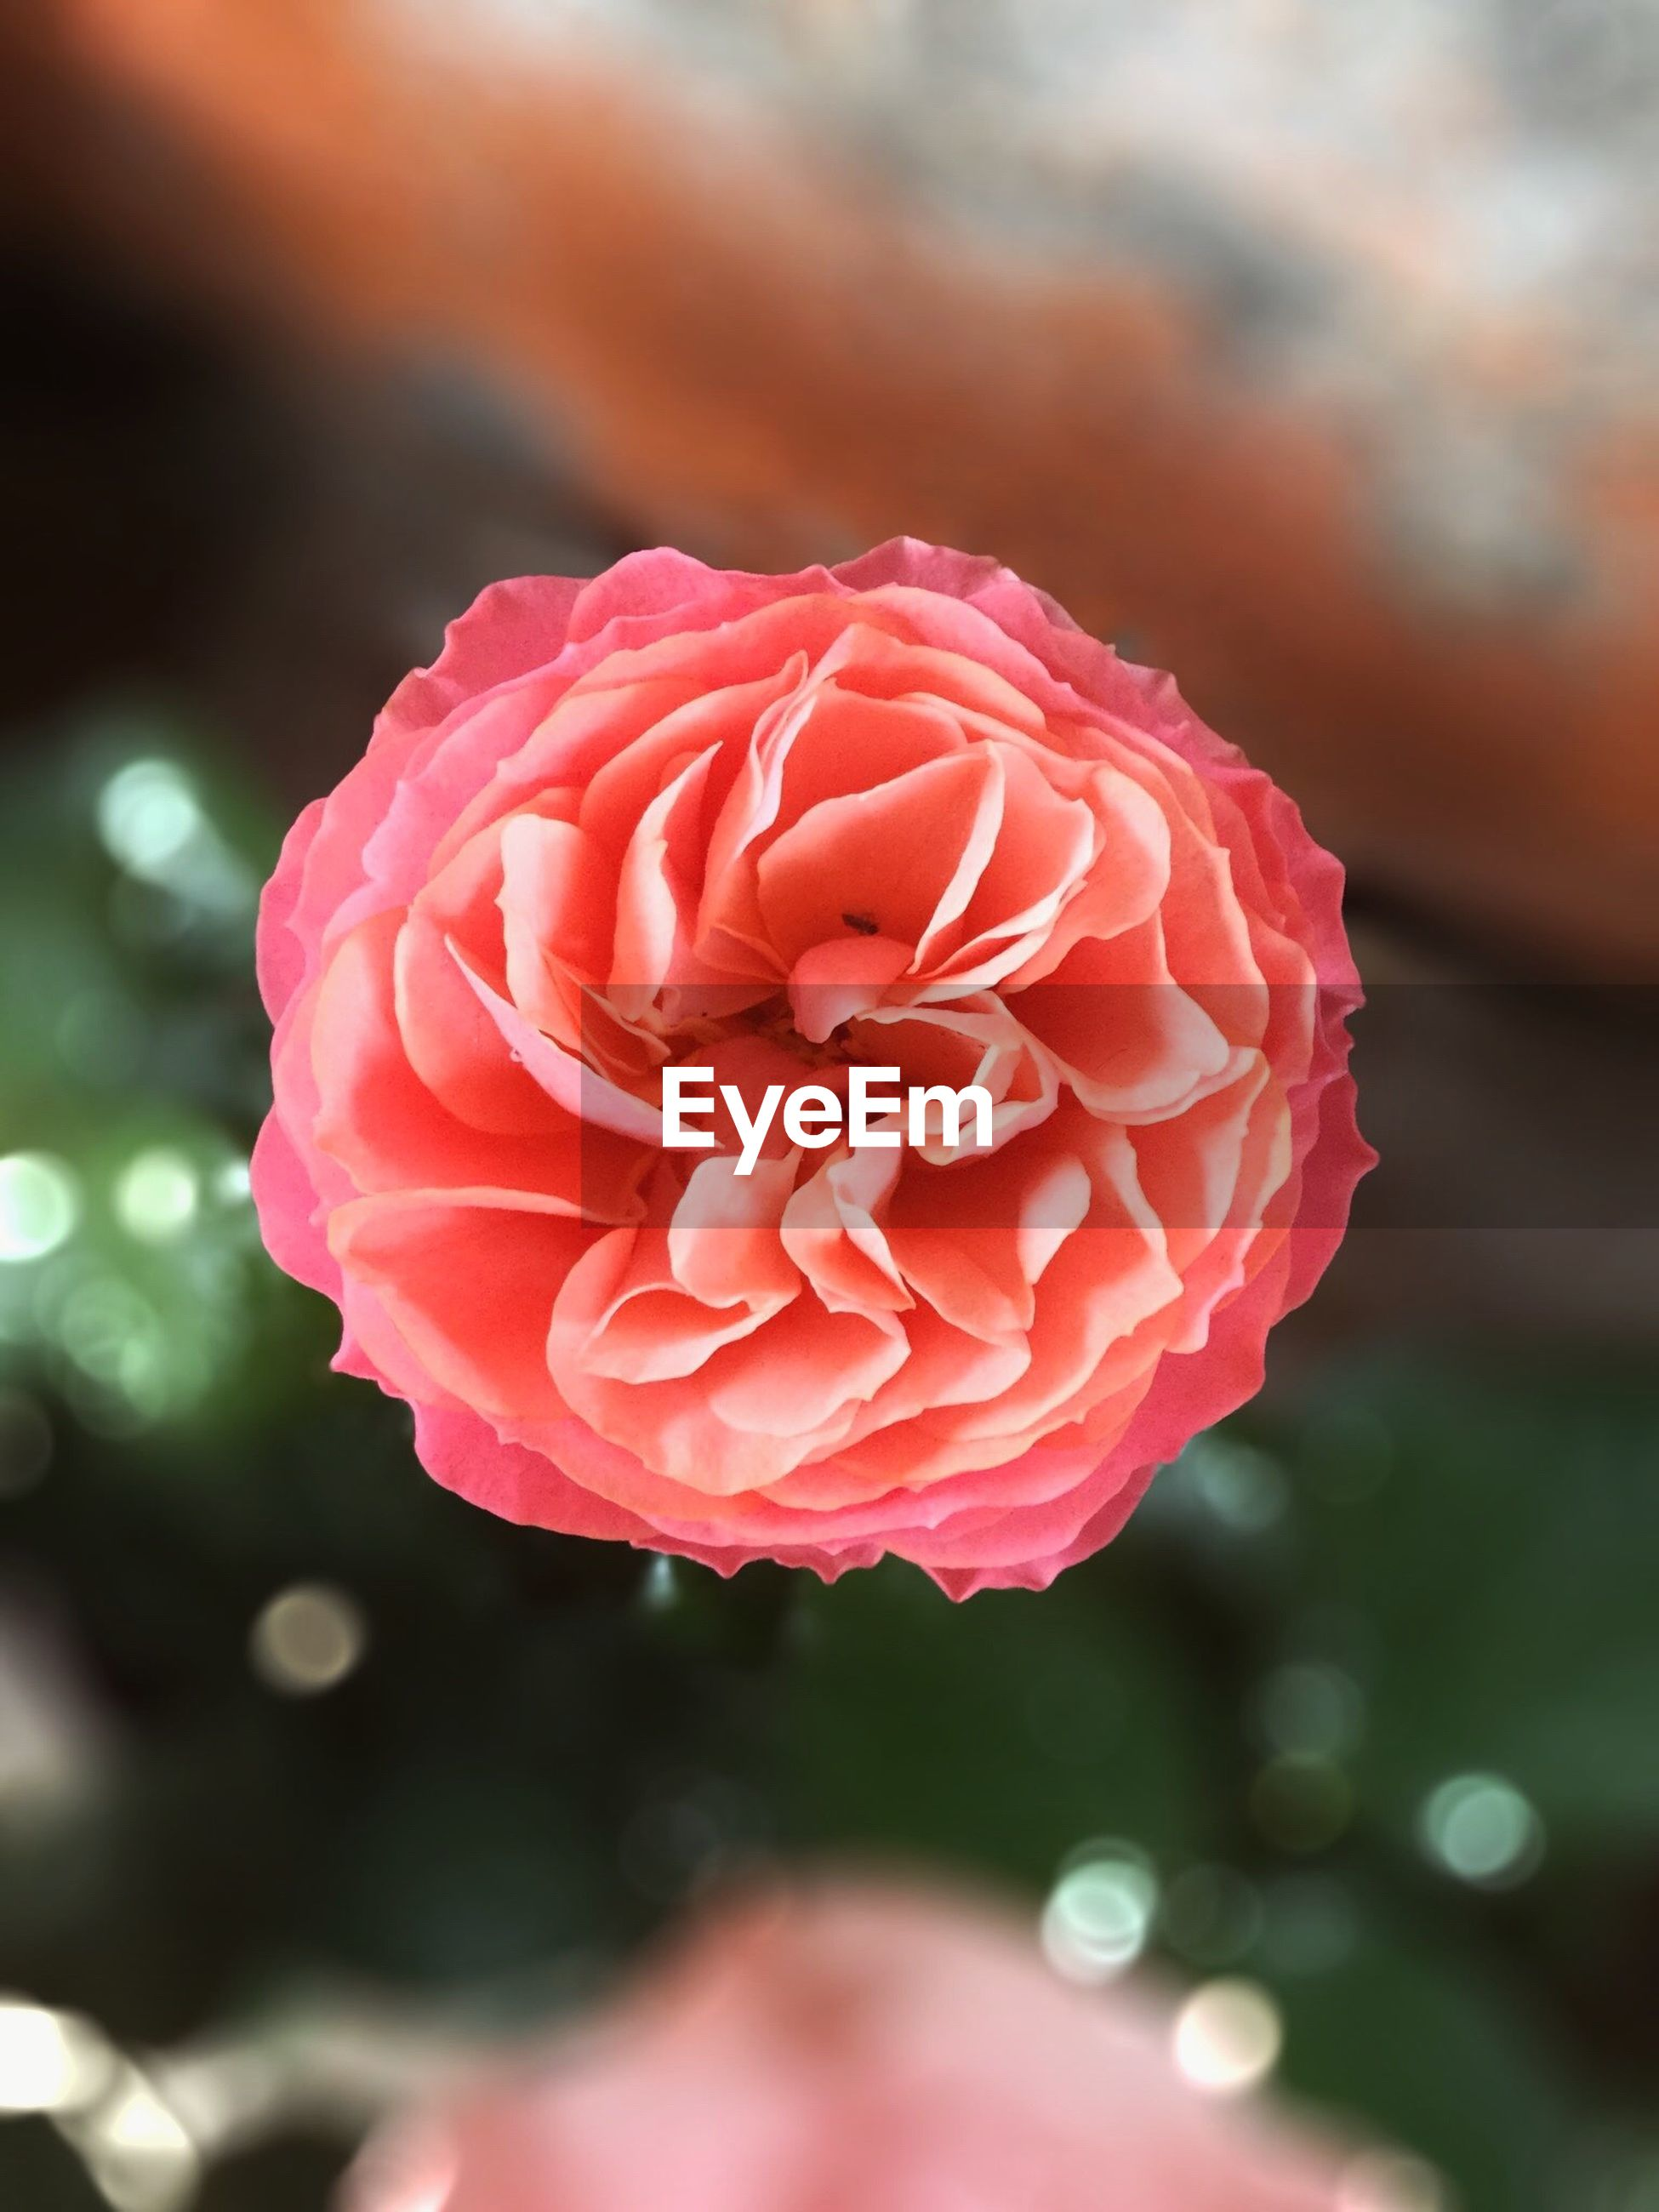 flower, petal, fragility, freshness, flower head, close-up, focus on foreground, beauty in nature, growth, single flower, rose - flower, nature, pink color, blooming, red, selective focus, plant, in bloom, blossom, outdoors